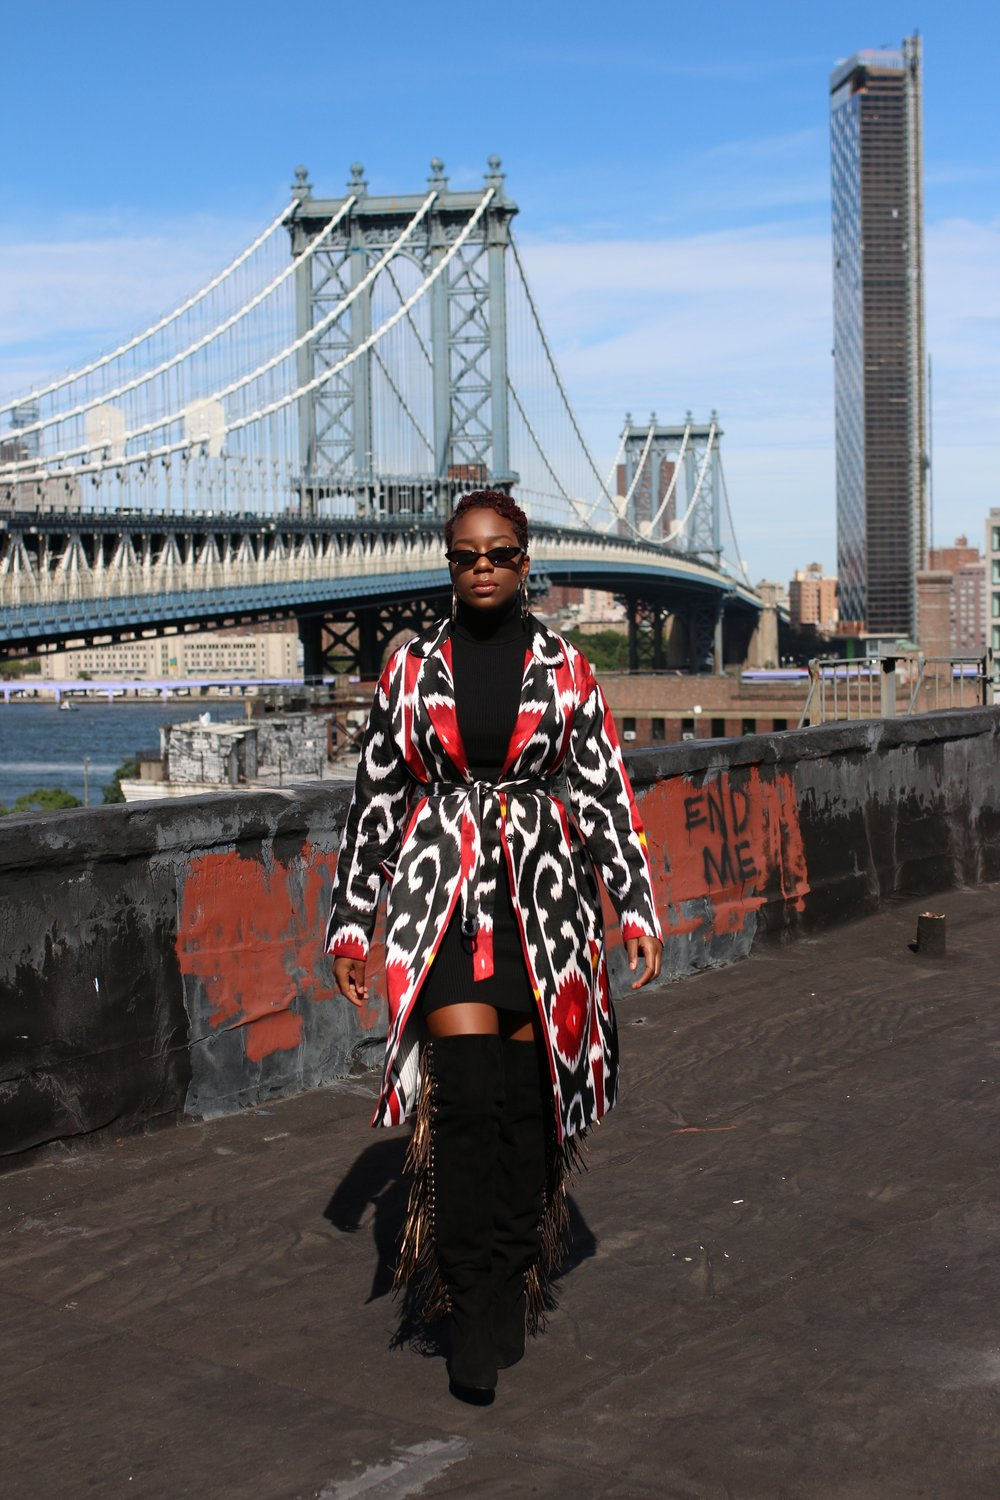 Coat by Moel Bosh provided by Dreams On Air NYC